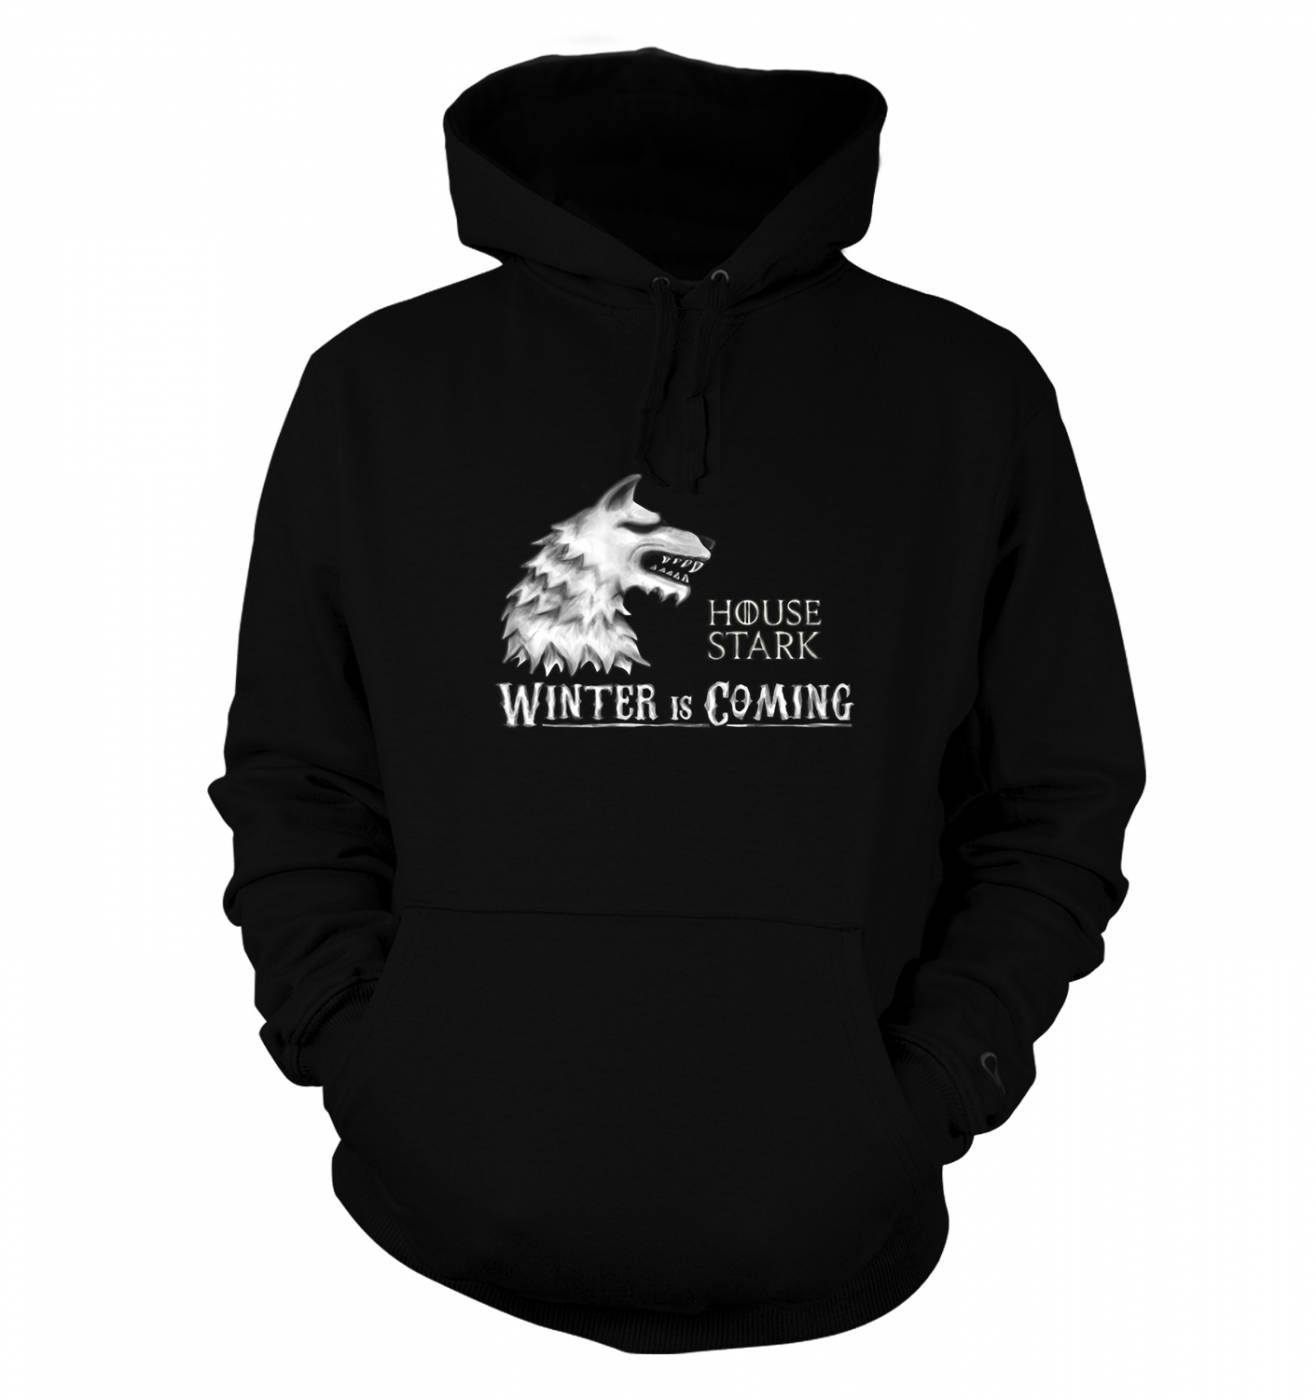 House Stark hoodie - Inspired by Game of Thrones